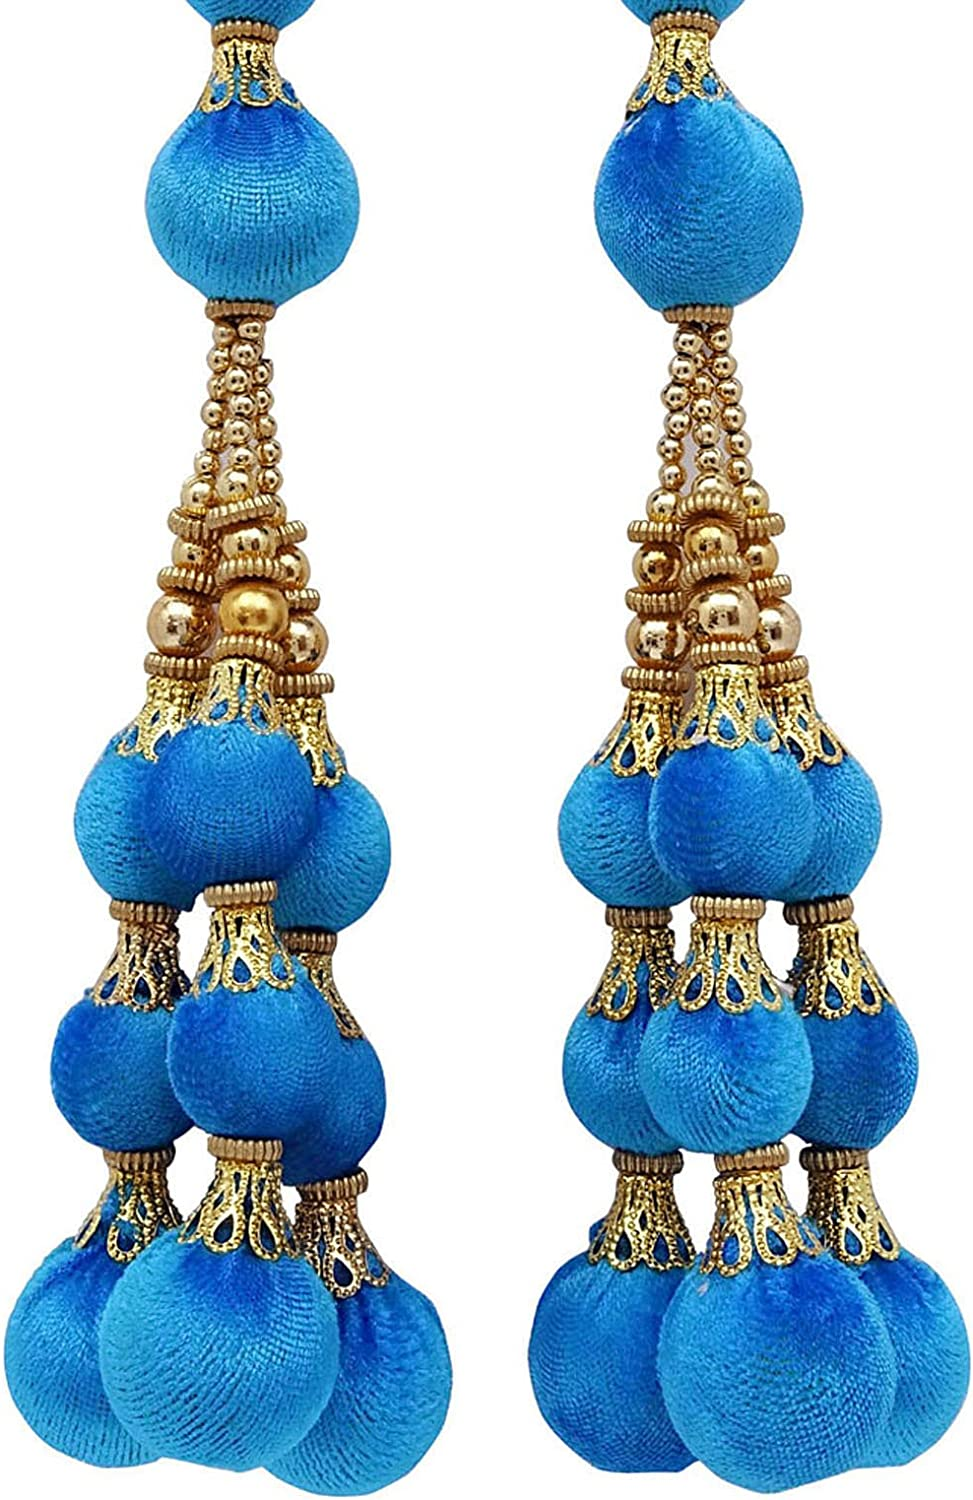 Blouse Latkans Indian Decorative Accessory Beaded Tassels Craft Sewing 1 Pair